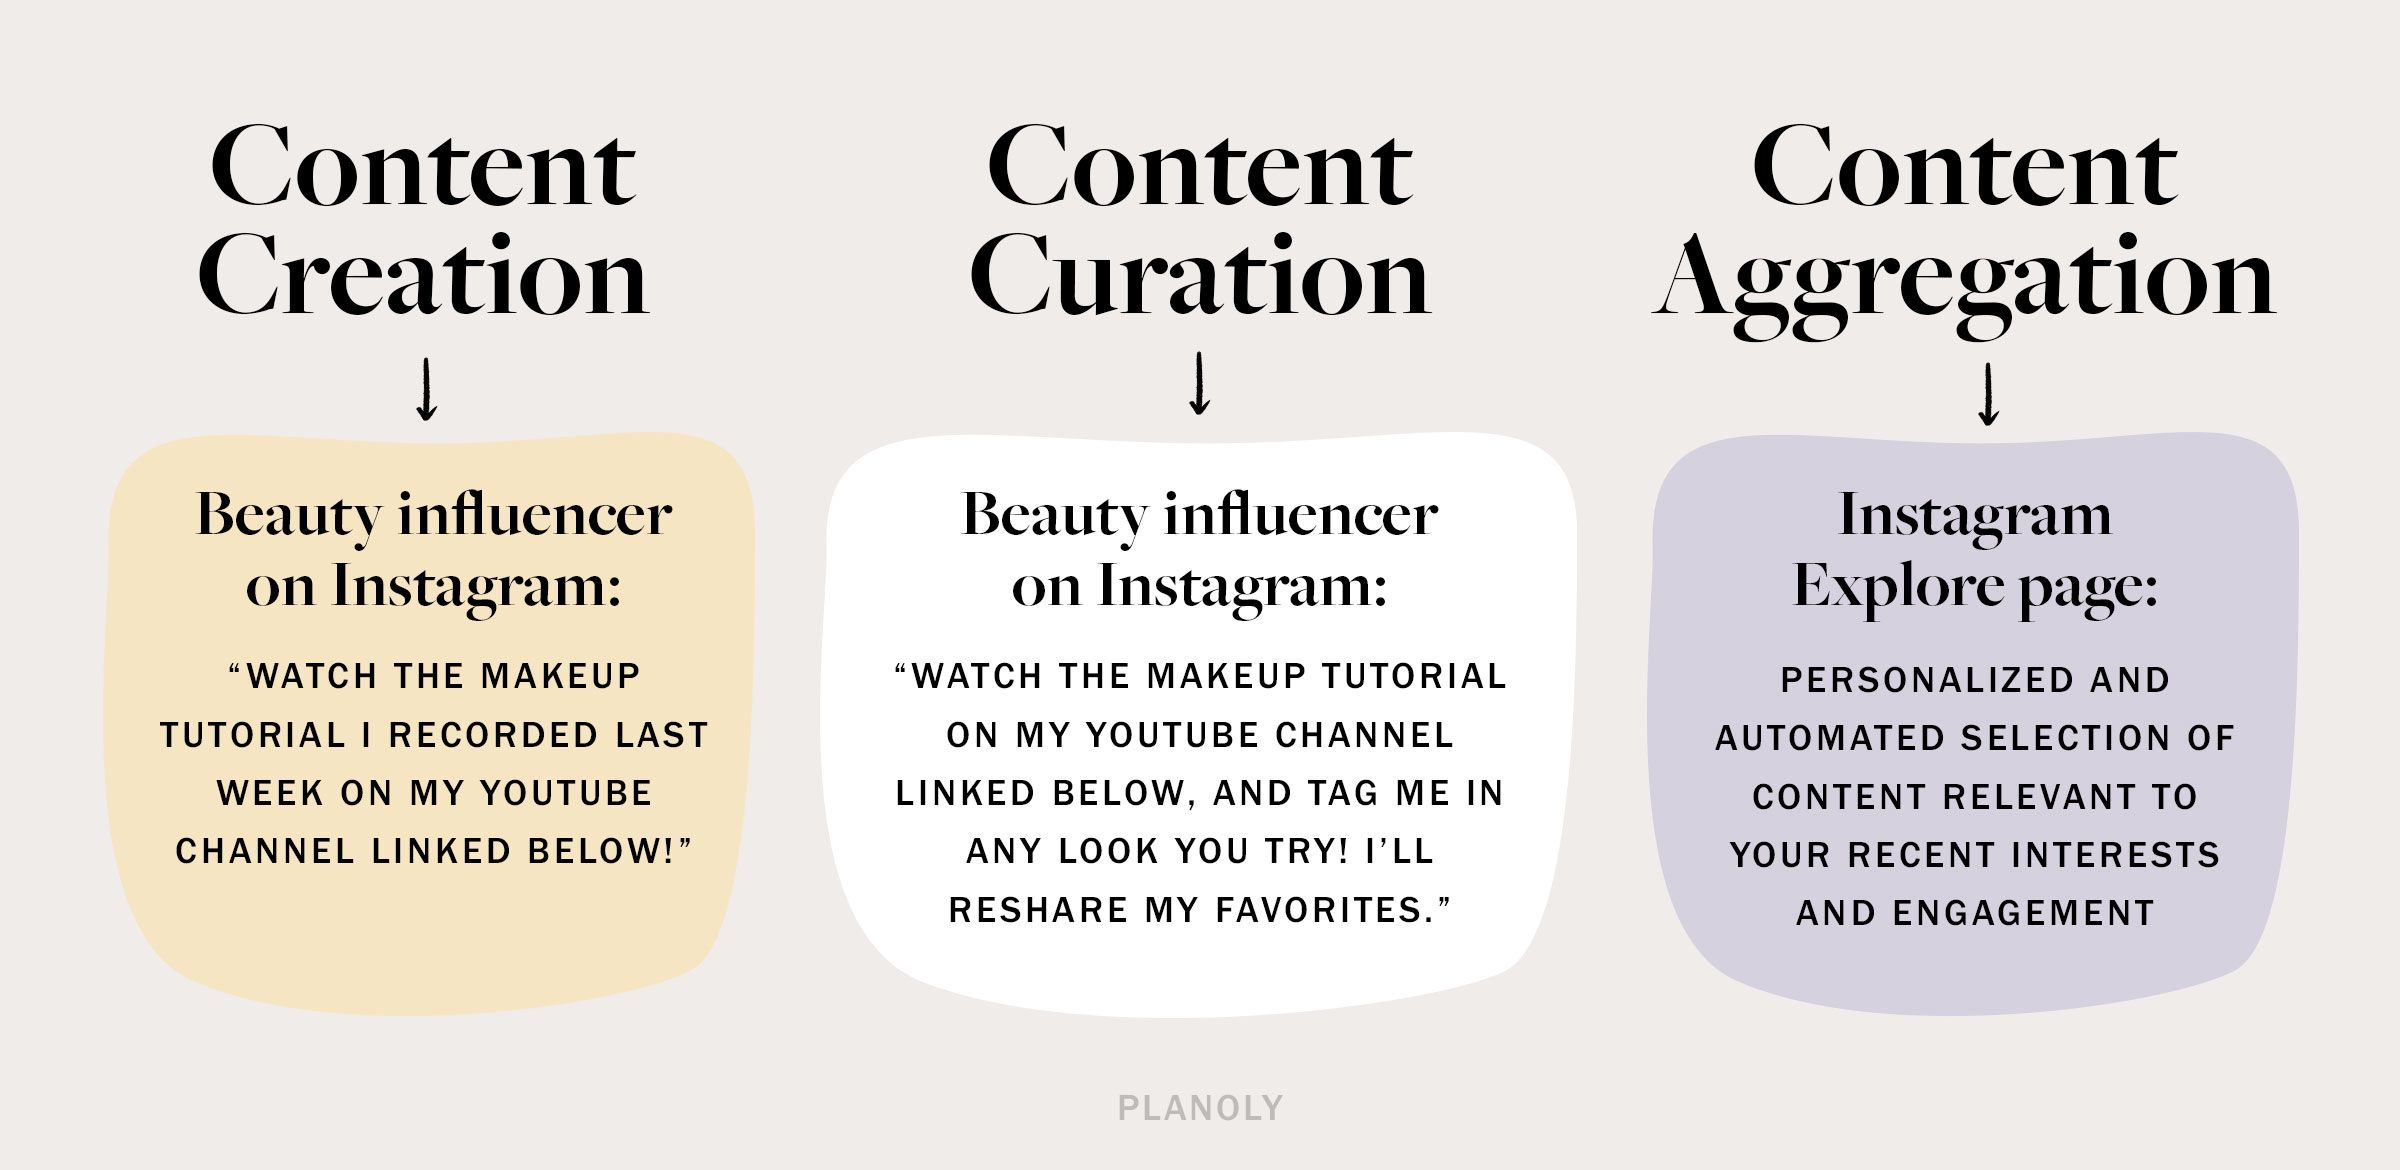 Blog_Content-Creation,-Curation,-and-Aggreation_Horizontal-Image